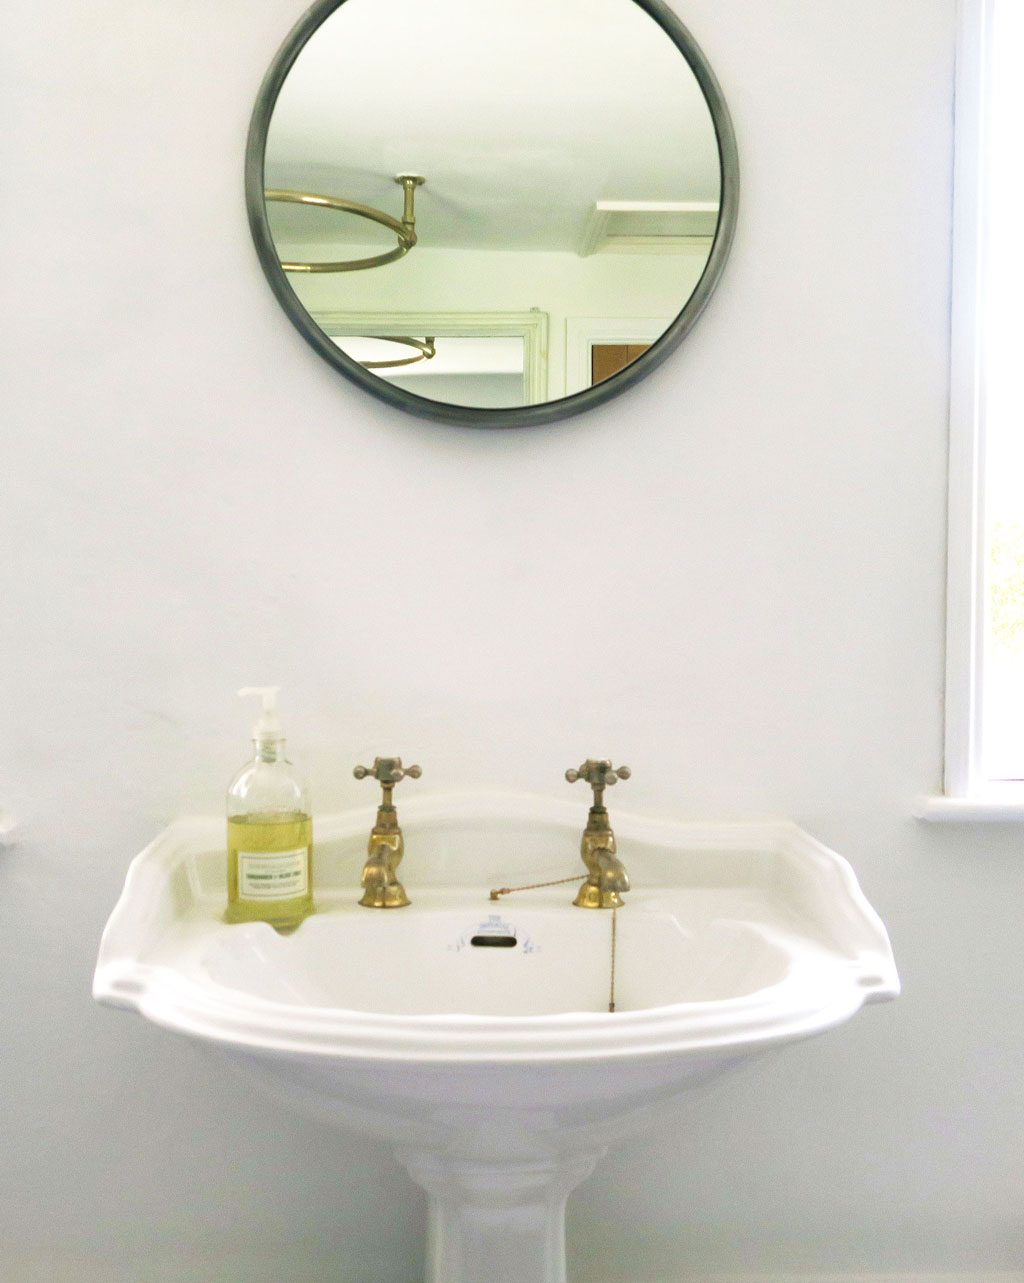 5 tips for a simple bathroom makeover from The Twinkle Diaries